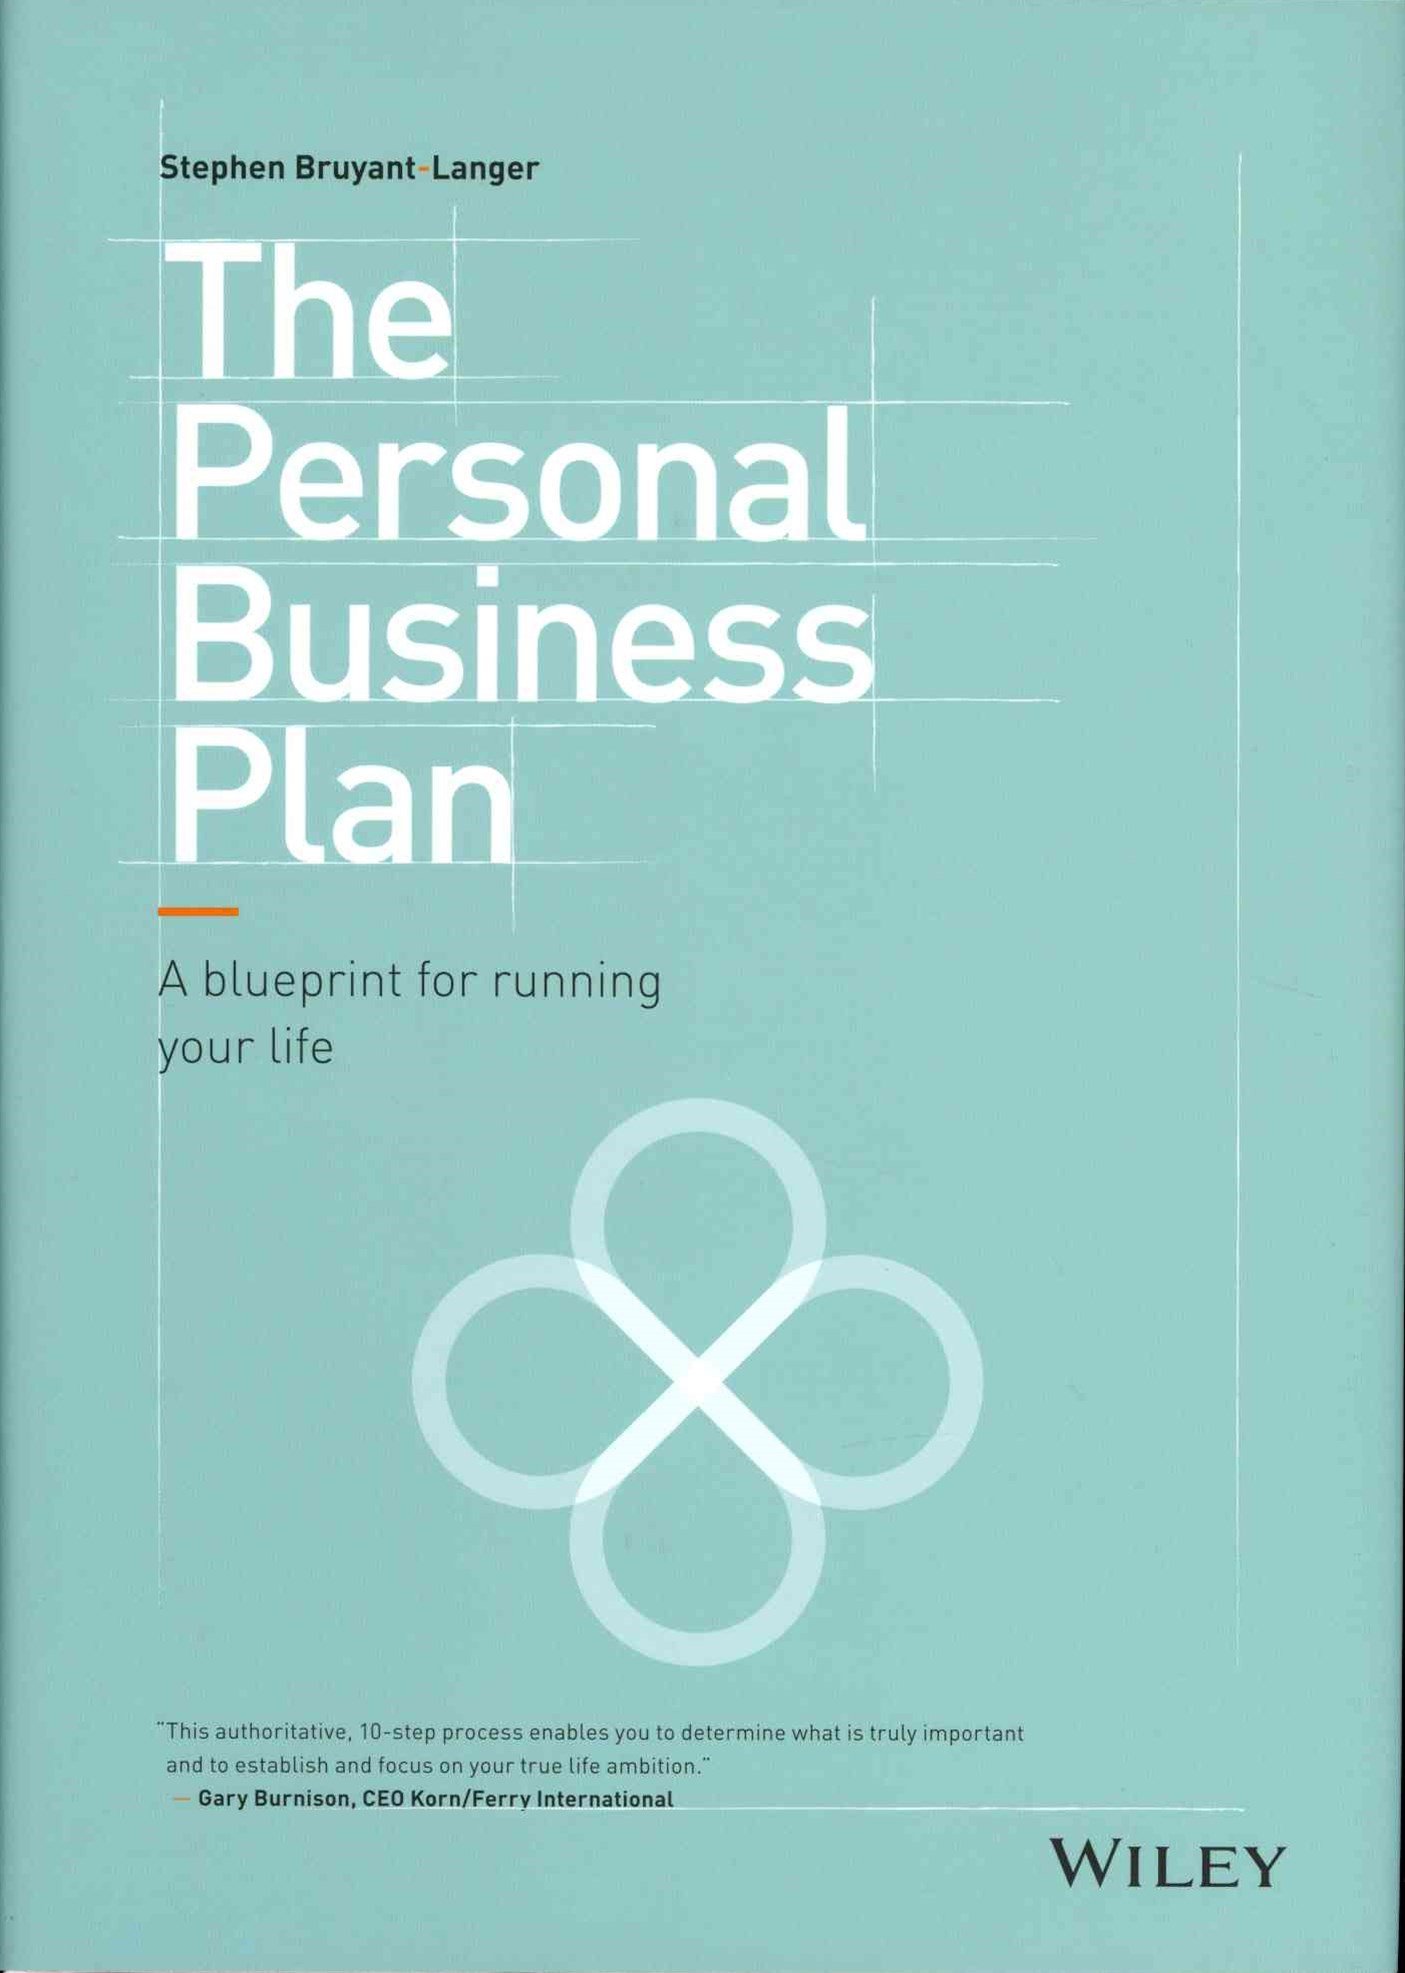 The Personal Business Plan - a Blueprint for      Running Life